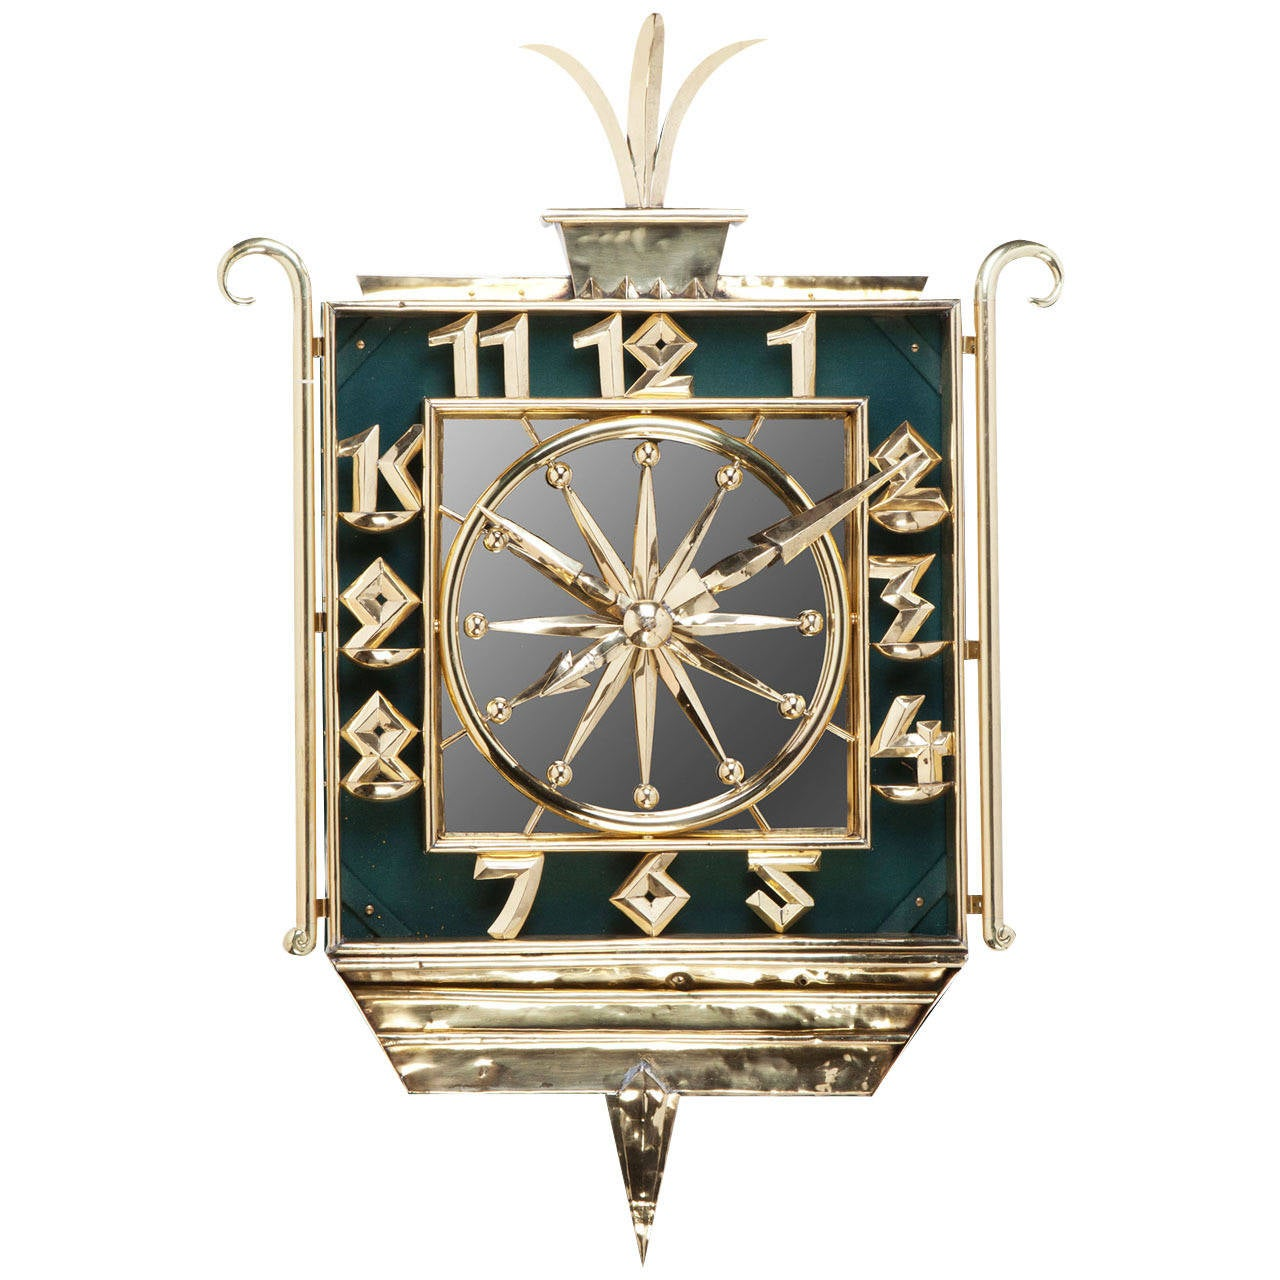 this art deco brass and mirrored wall clock is no longer available